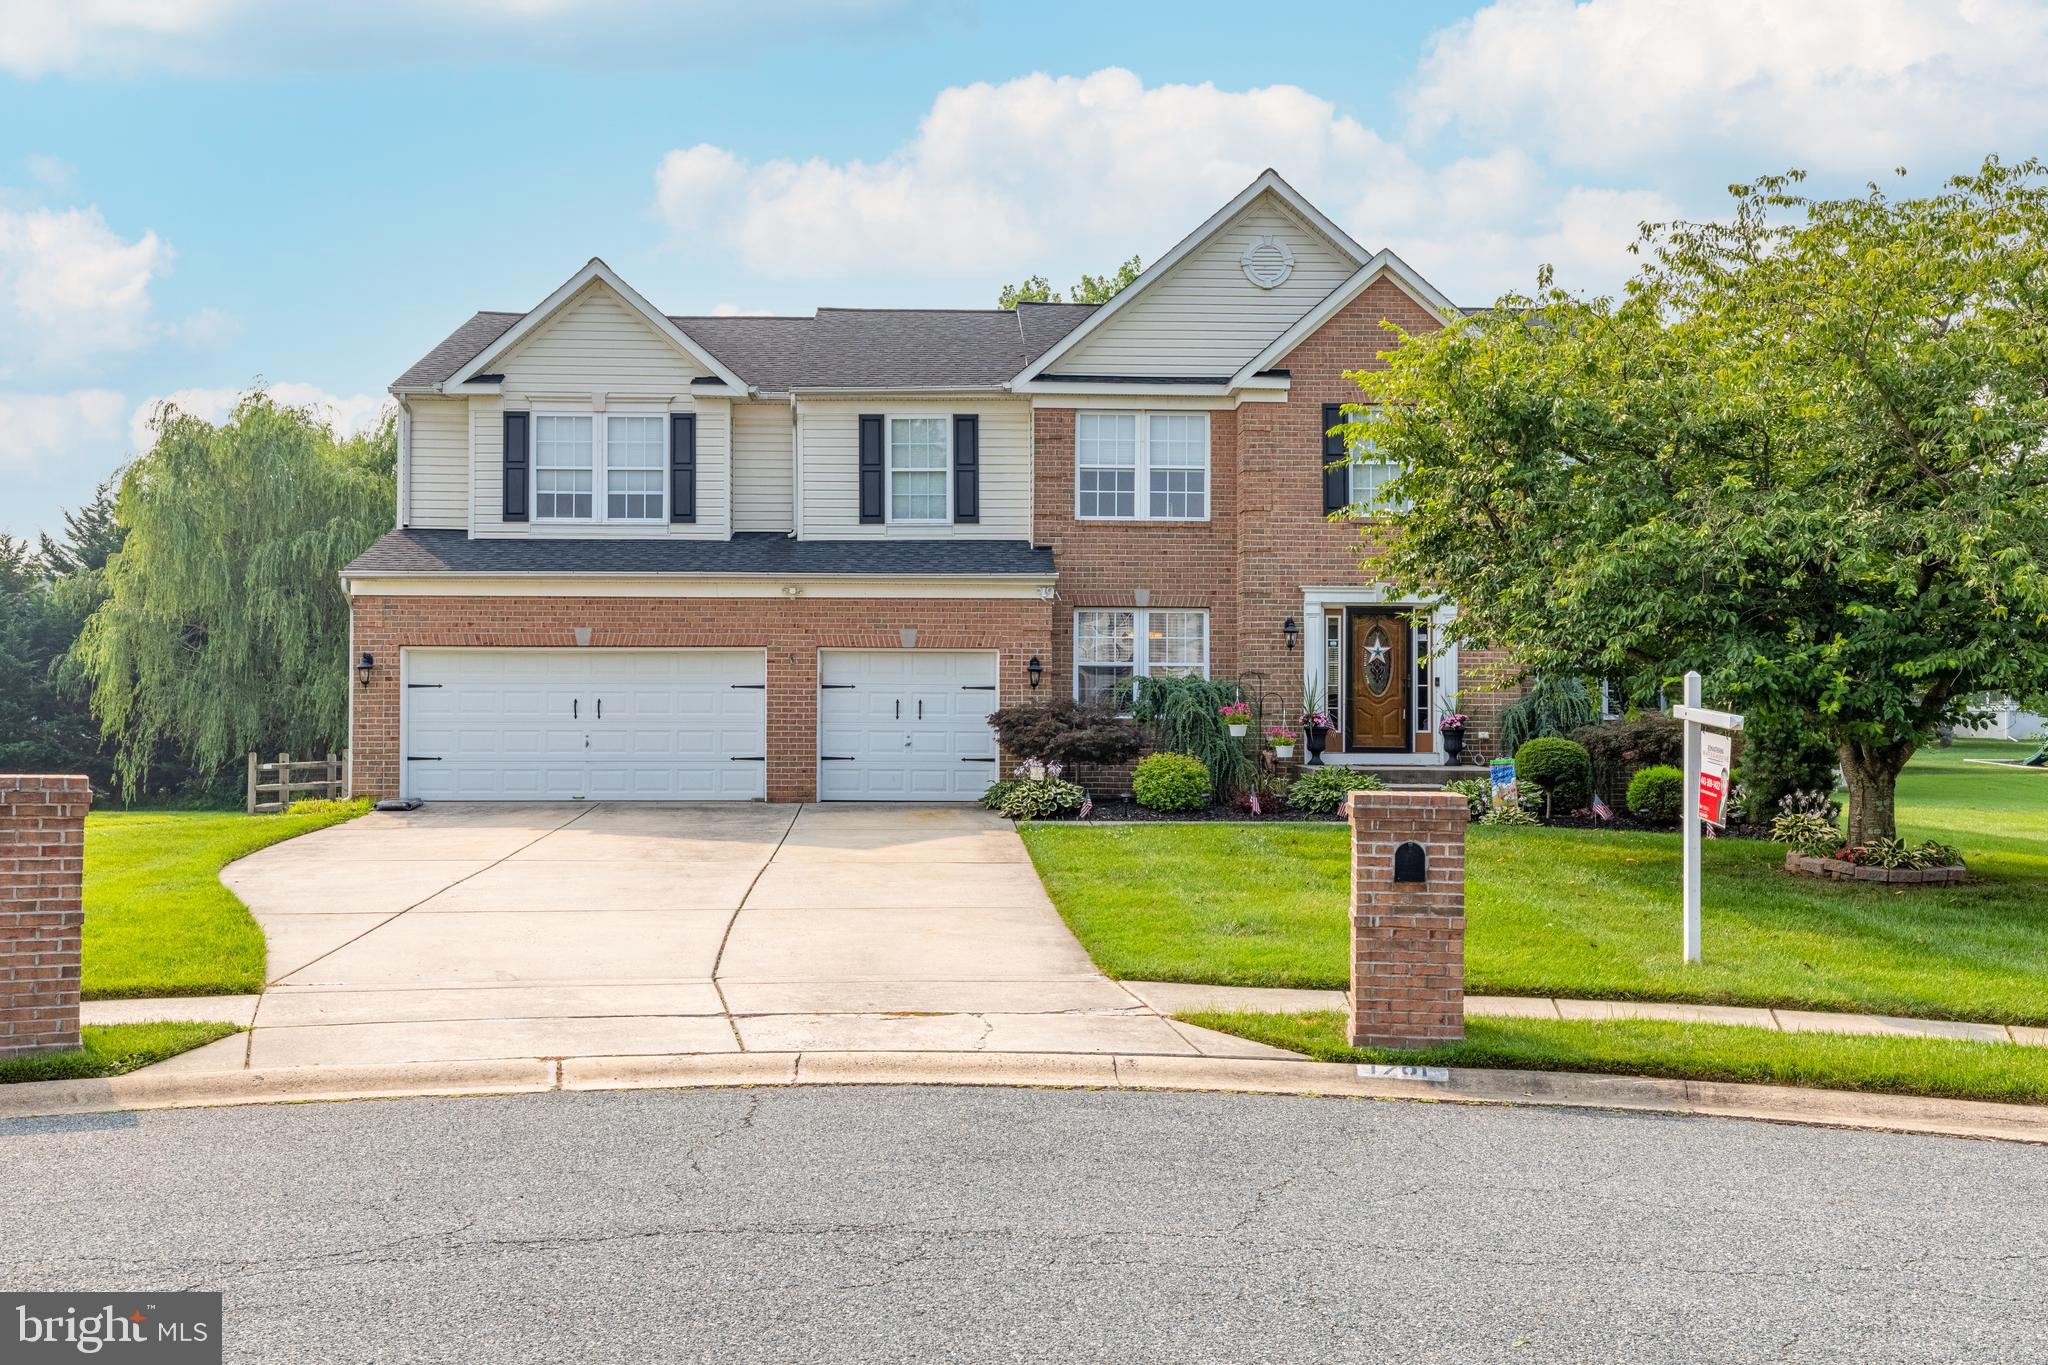 Rare opportunity to own this impressive brick-front colonial with three car garage in sought after W